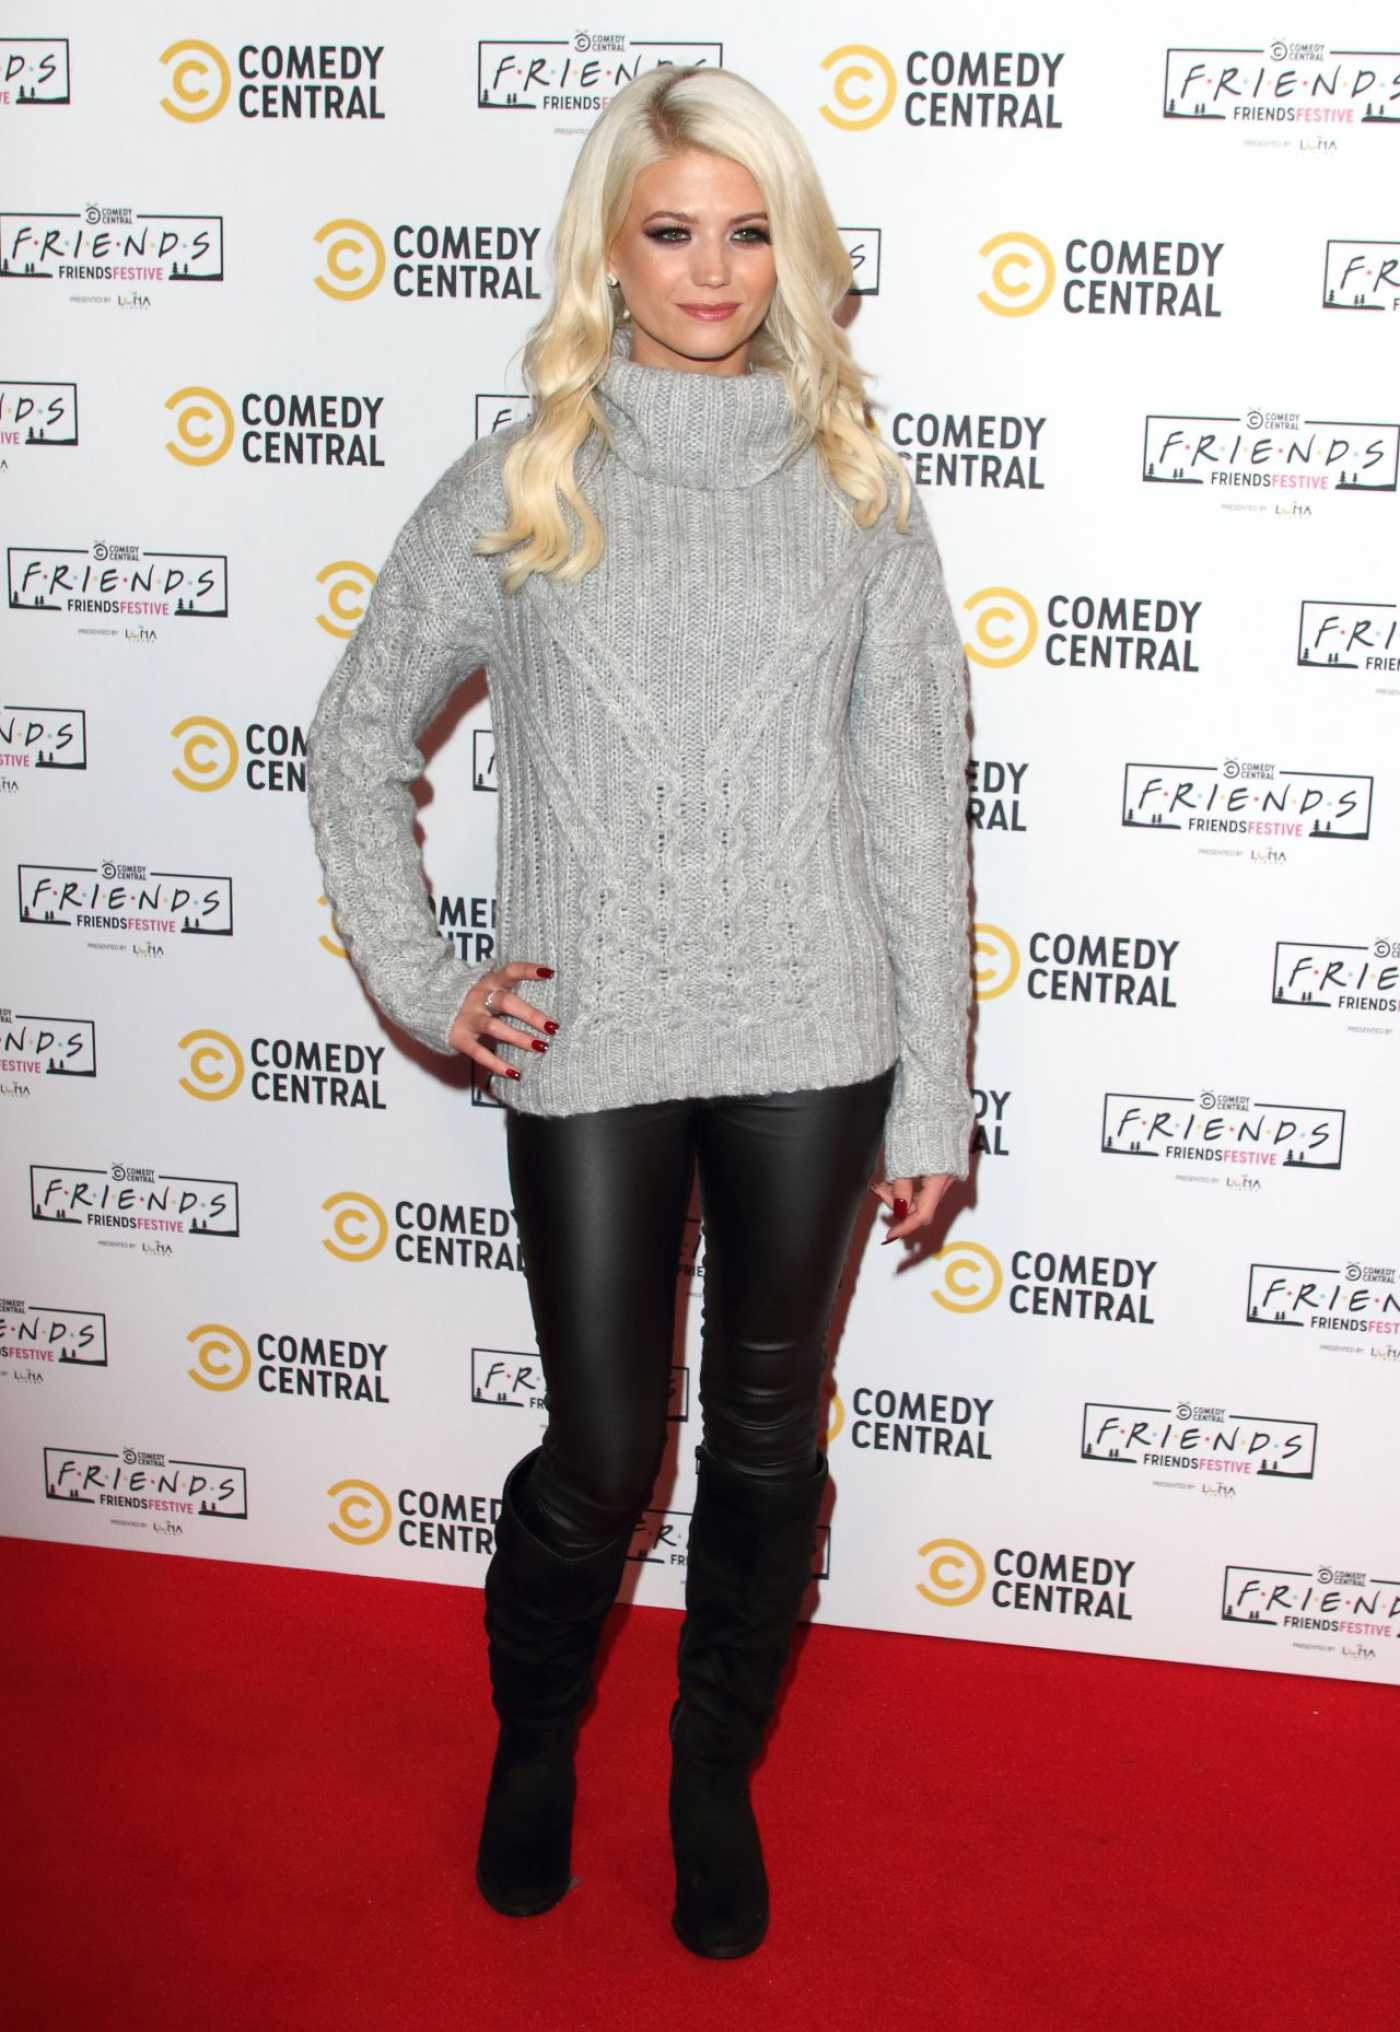 Danielle Harold Attends the Comedy Central Friends Festive Exhibition Launch in London 11/28/2019